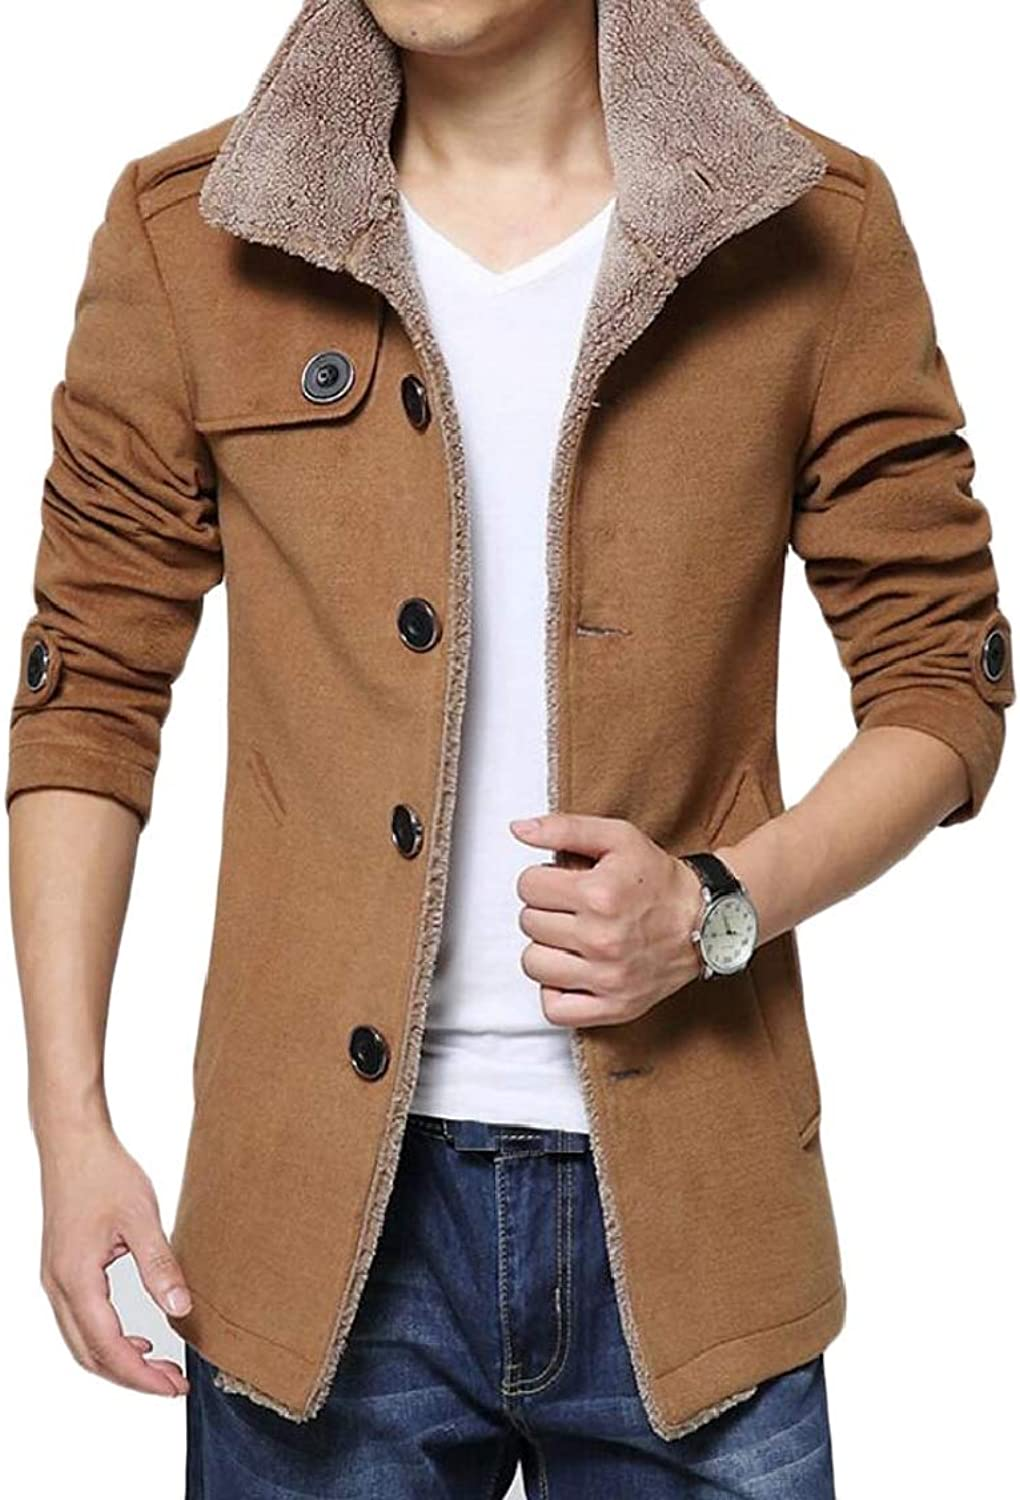 XQS Men's Casual Mid Long Faux Fur Lined Stand Collar Thicken Trench Coat